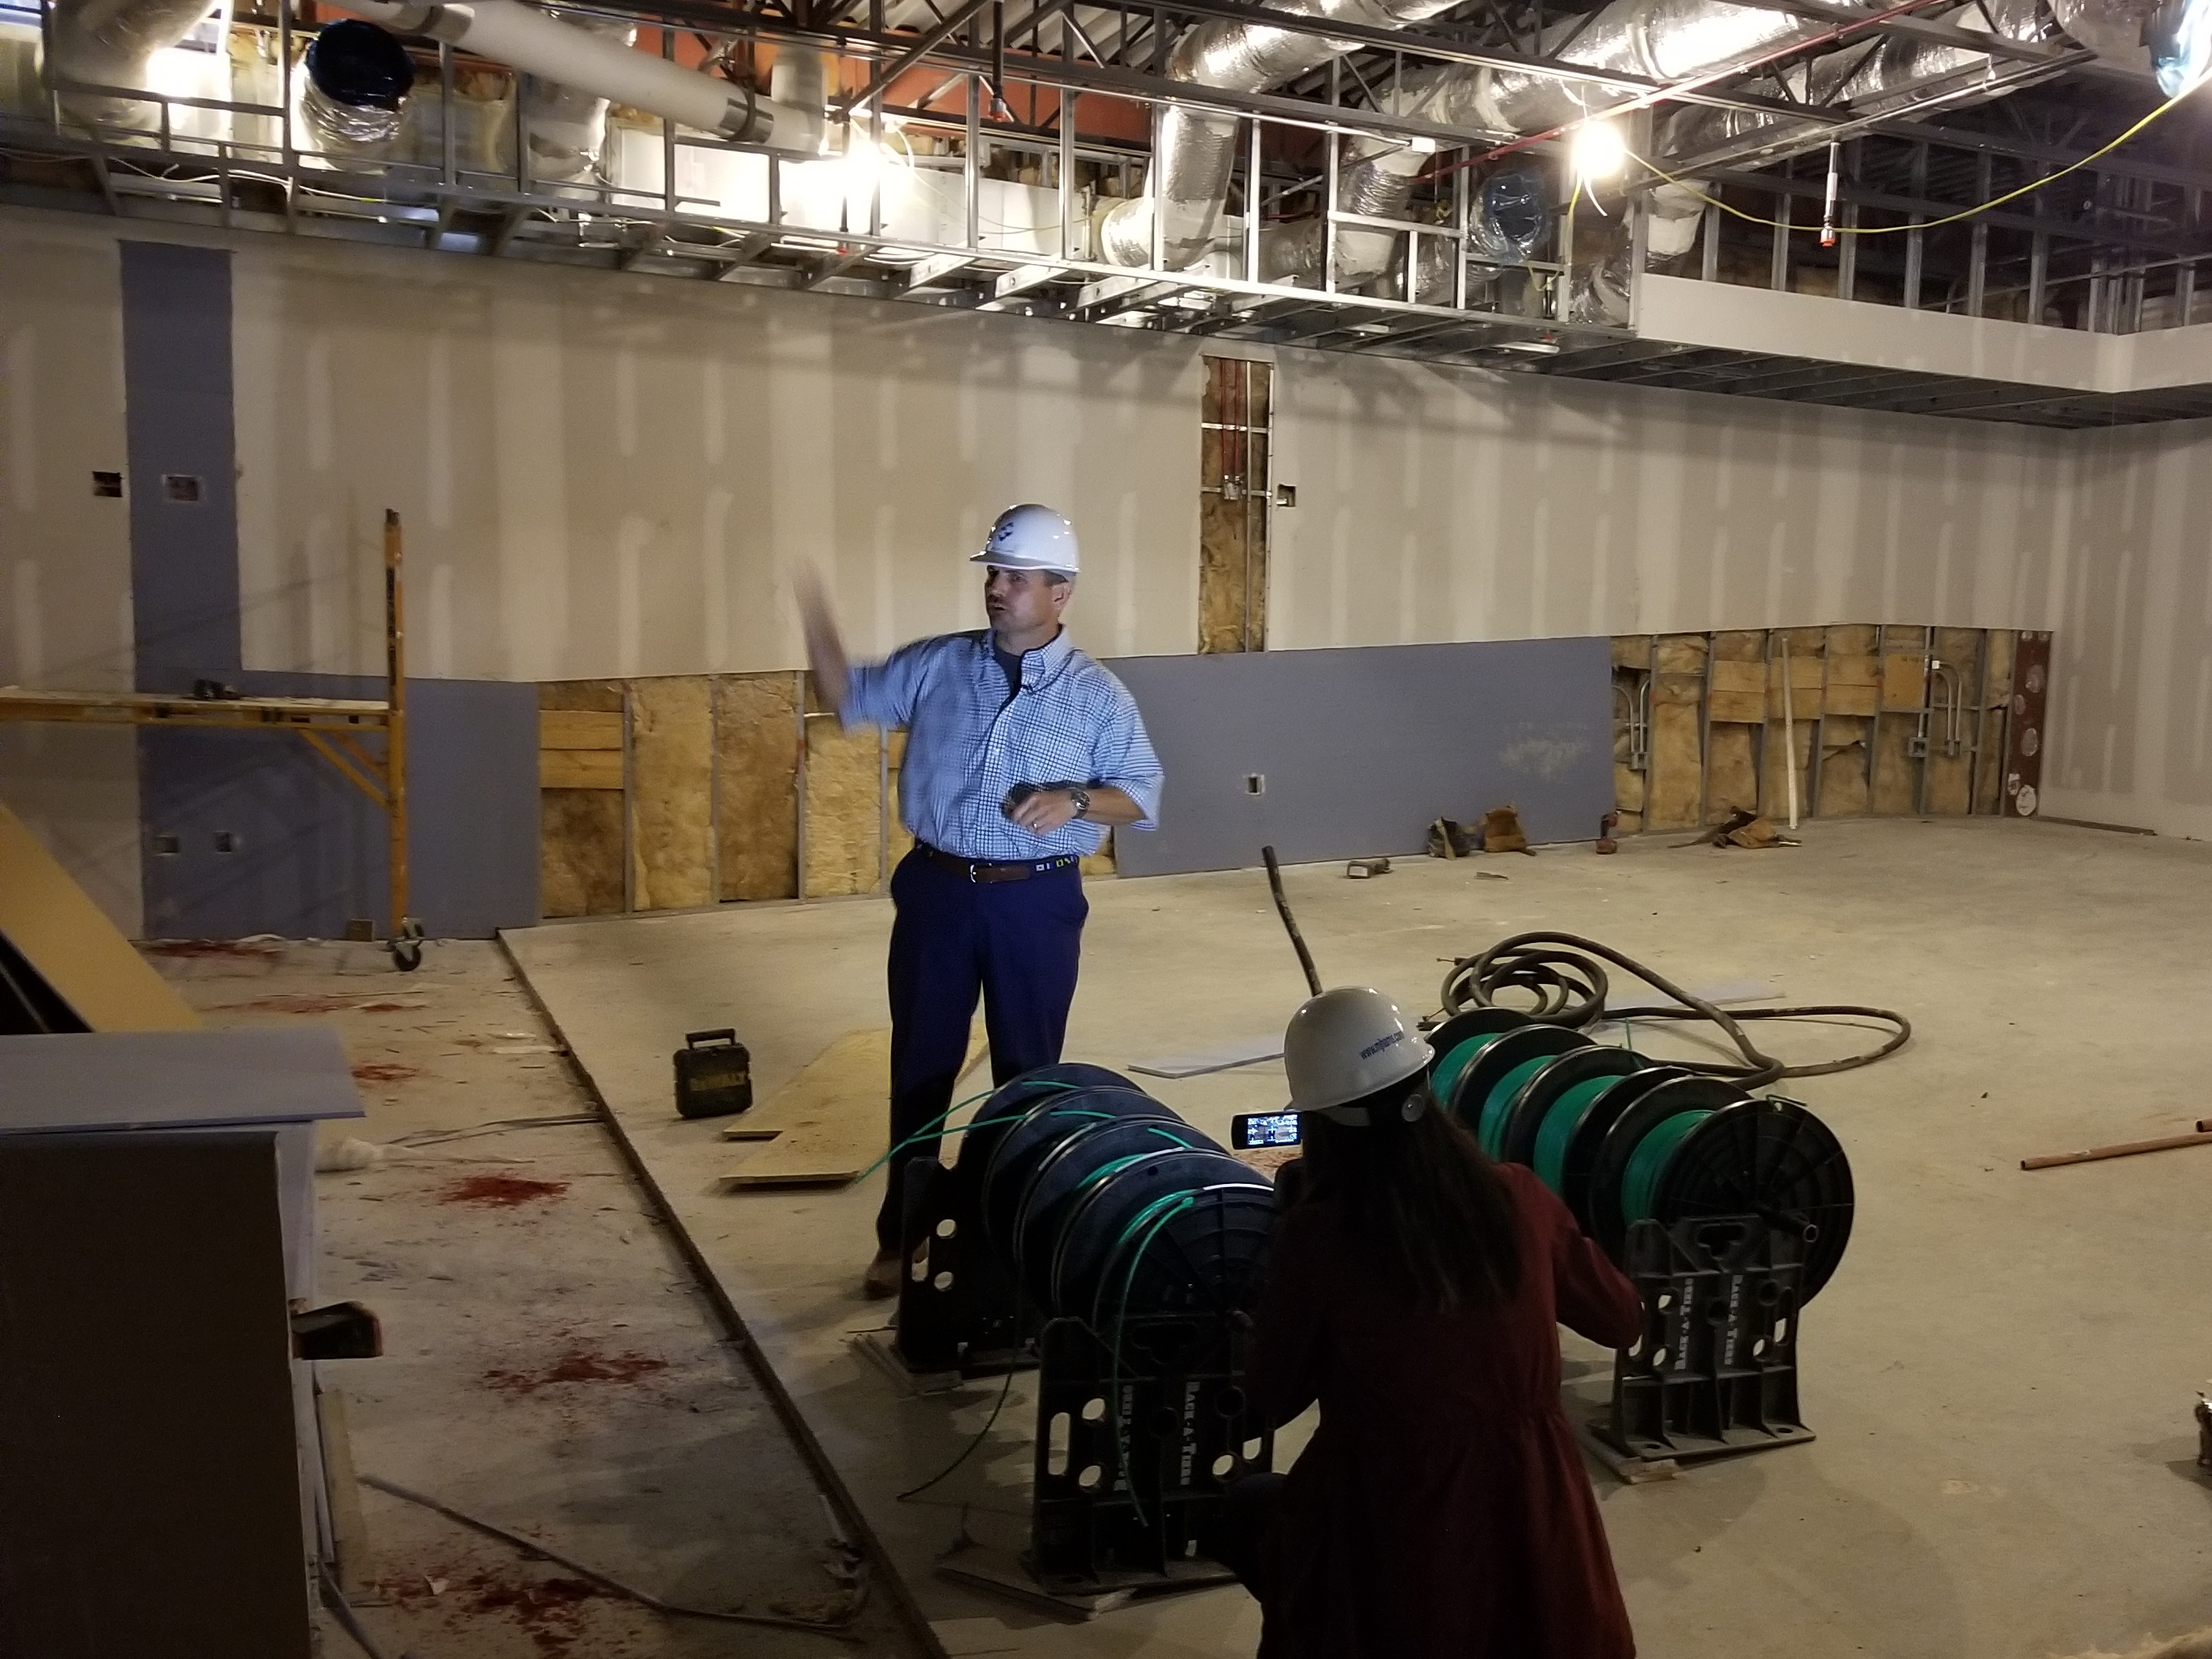 UAB Football Head Coach Bill Clark talks to the media while standing inside the new team meeting space which will feature theater style seating.